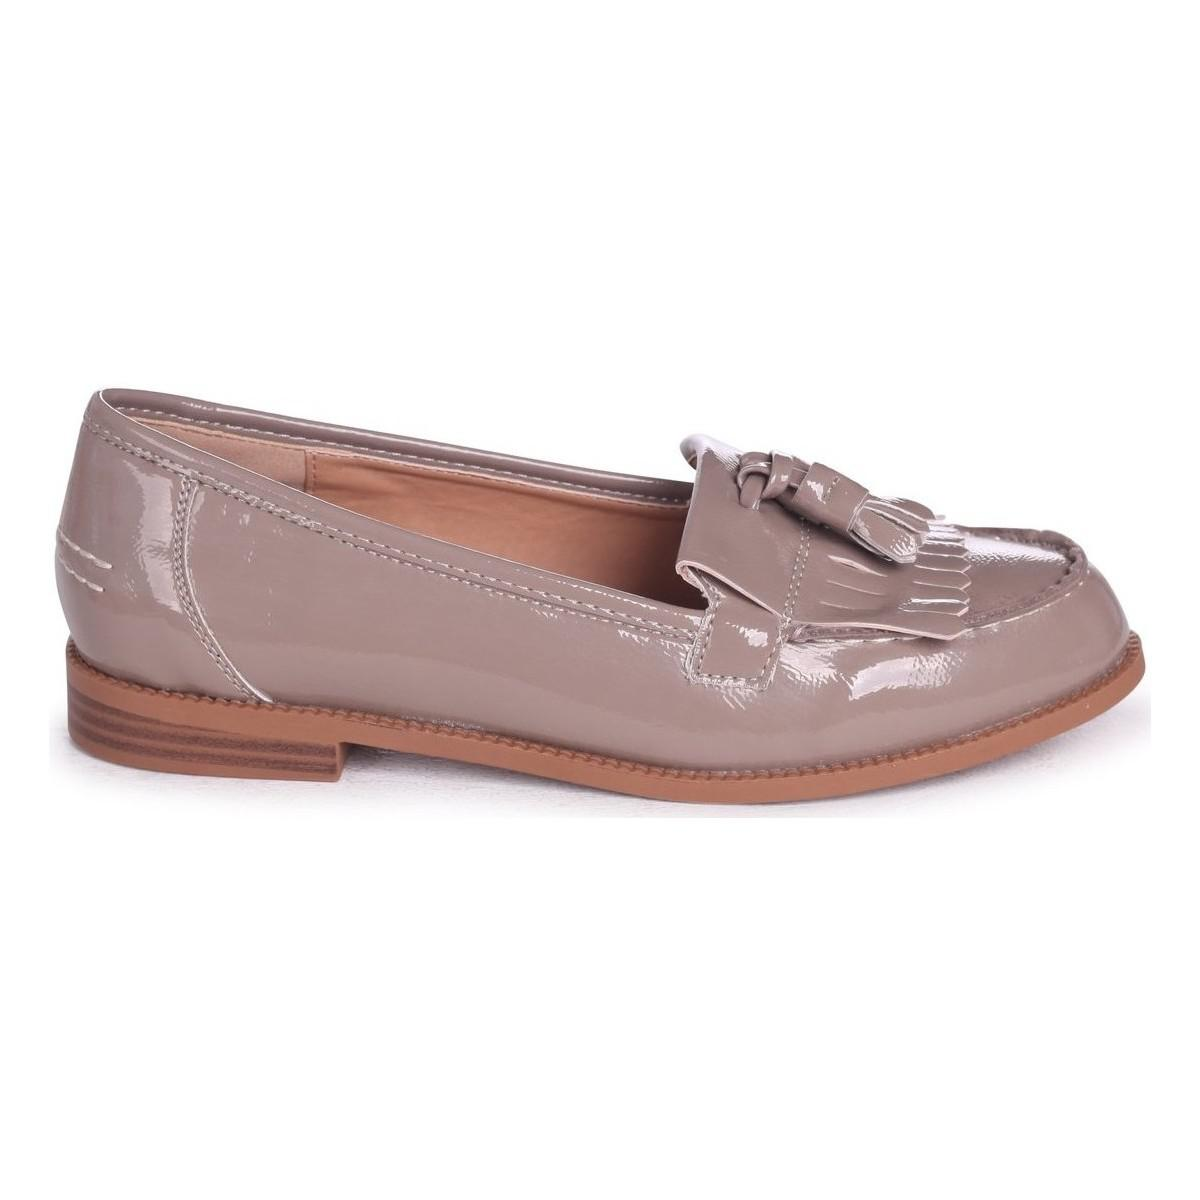 838fee2ad8f Linzi Rosemary Women s Loafers   Casual Shoes In Other - Lyst